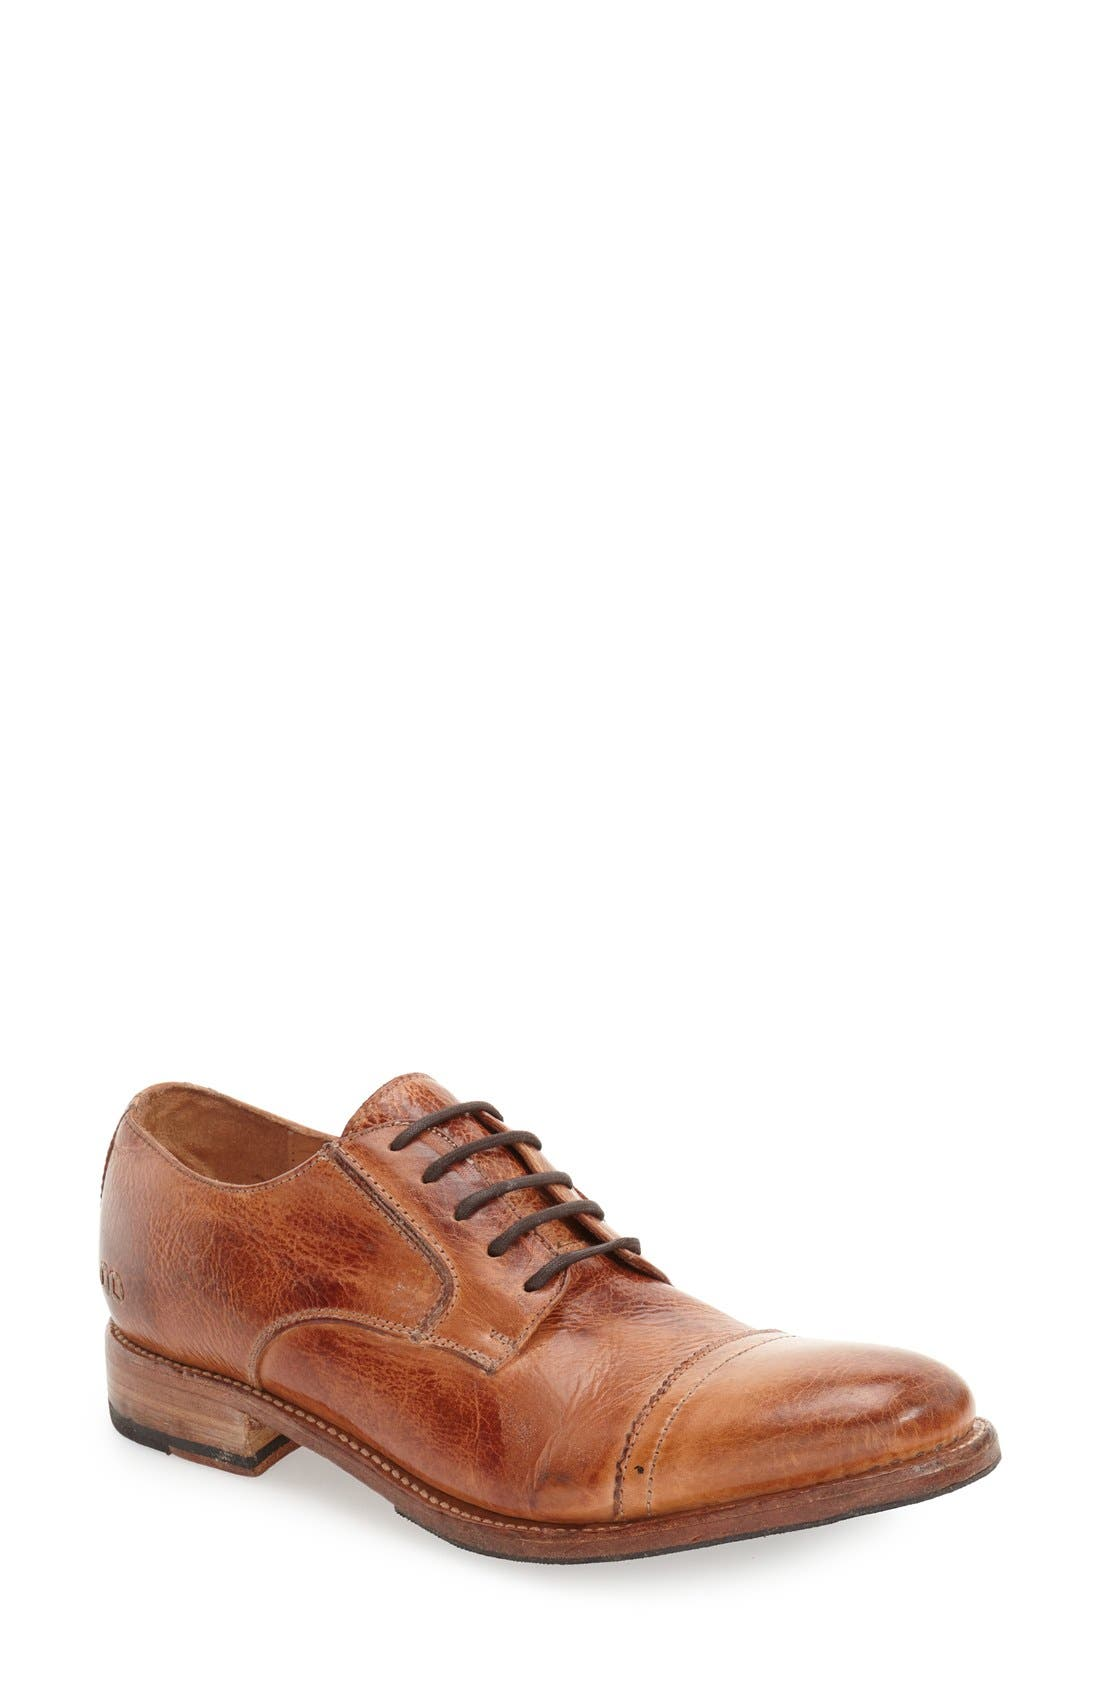 BED STU Diorite Cap Toe Derby